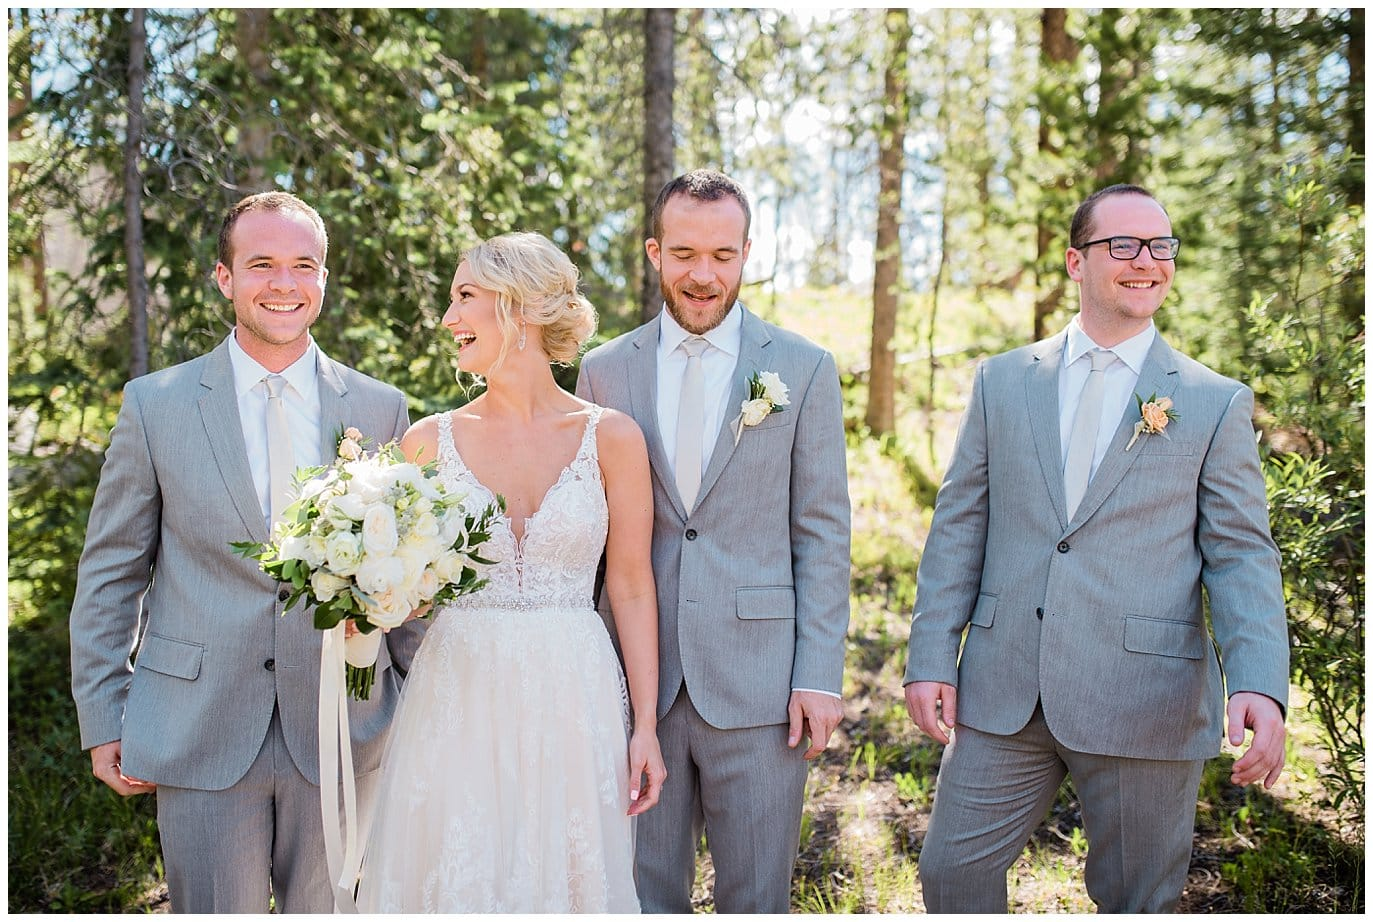 bride in lace dress with groomsmen in grey suits at Summer Piney River Ranch wedding by Vail wedding photographer Jennie Crate, Photographer